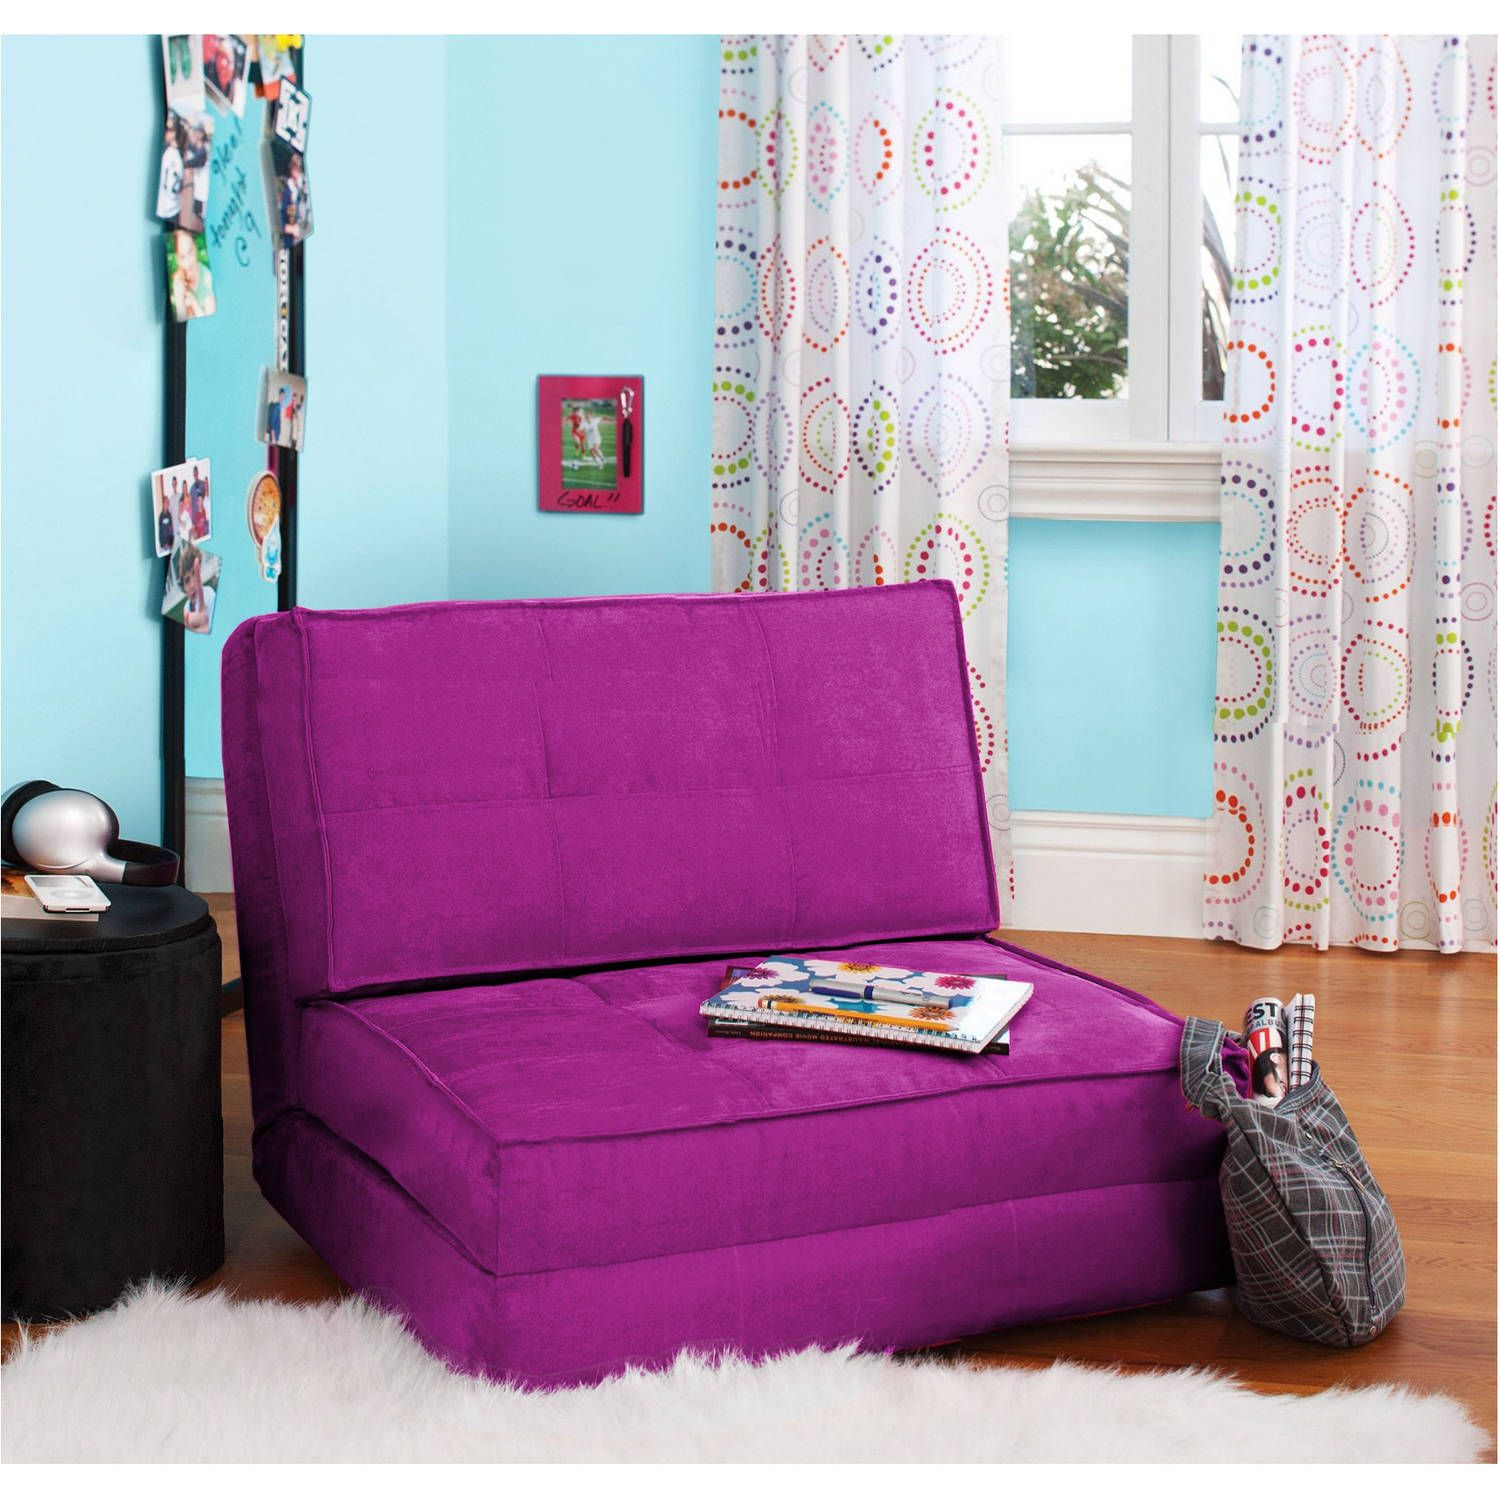 Dorm seating papasan dorm sofa pink college futon - Your Zone Flip Chair Multiple Colors Perfect For Under Loft Bed